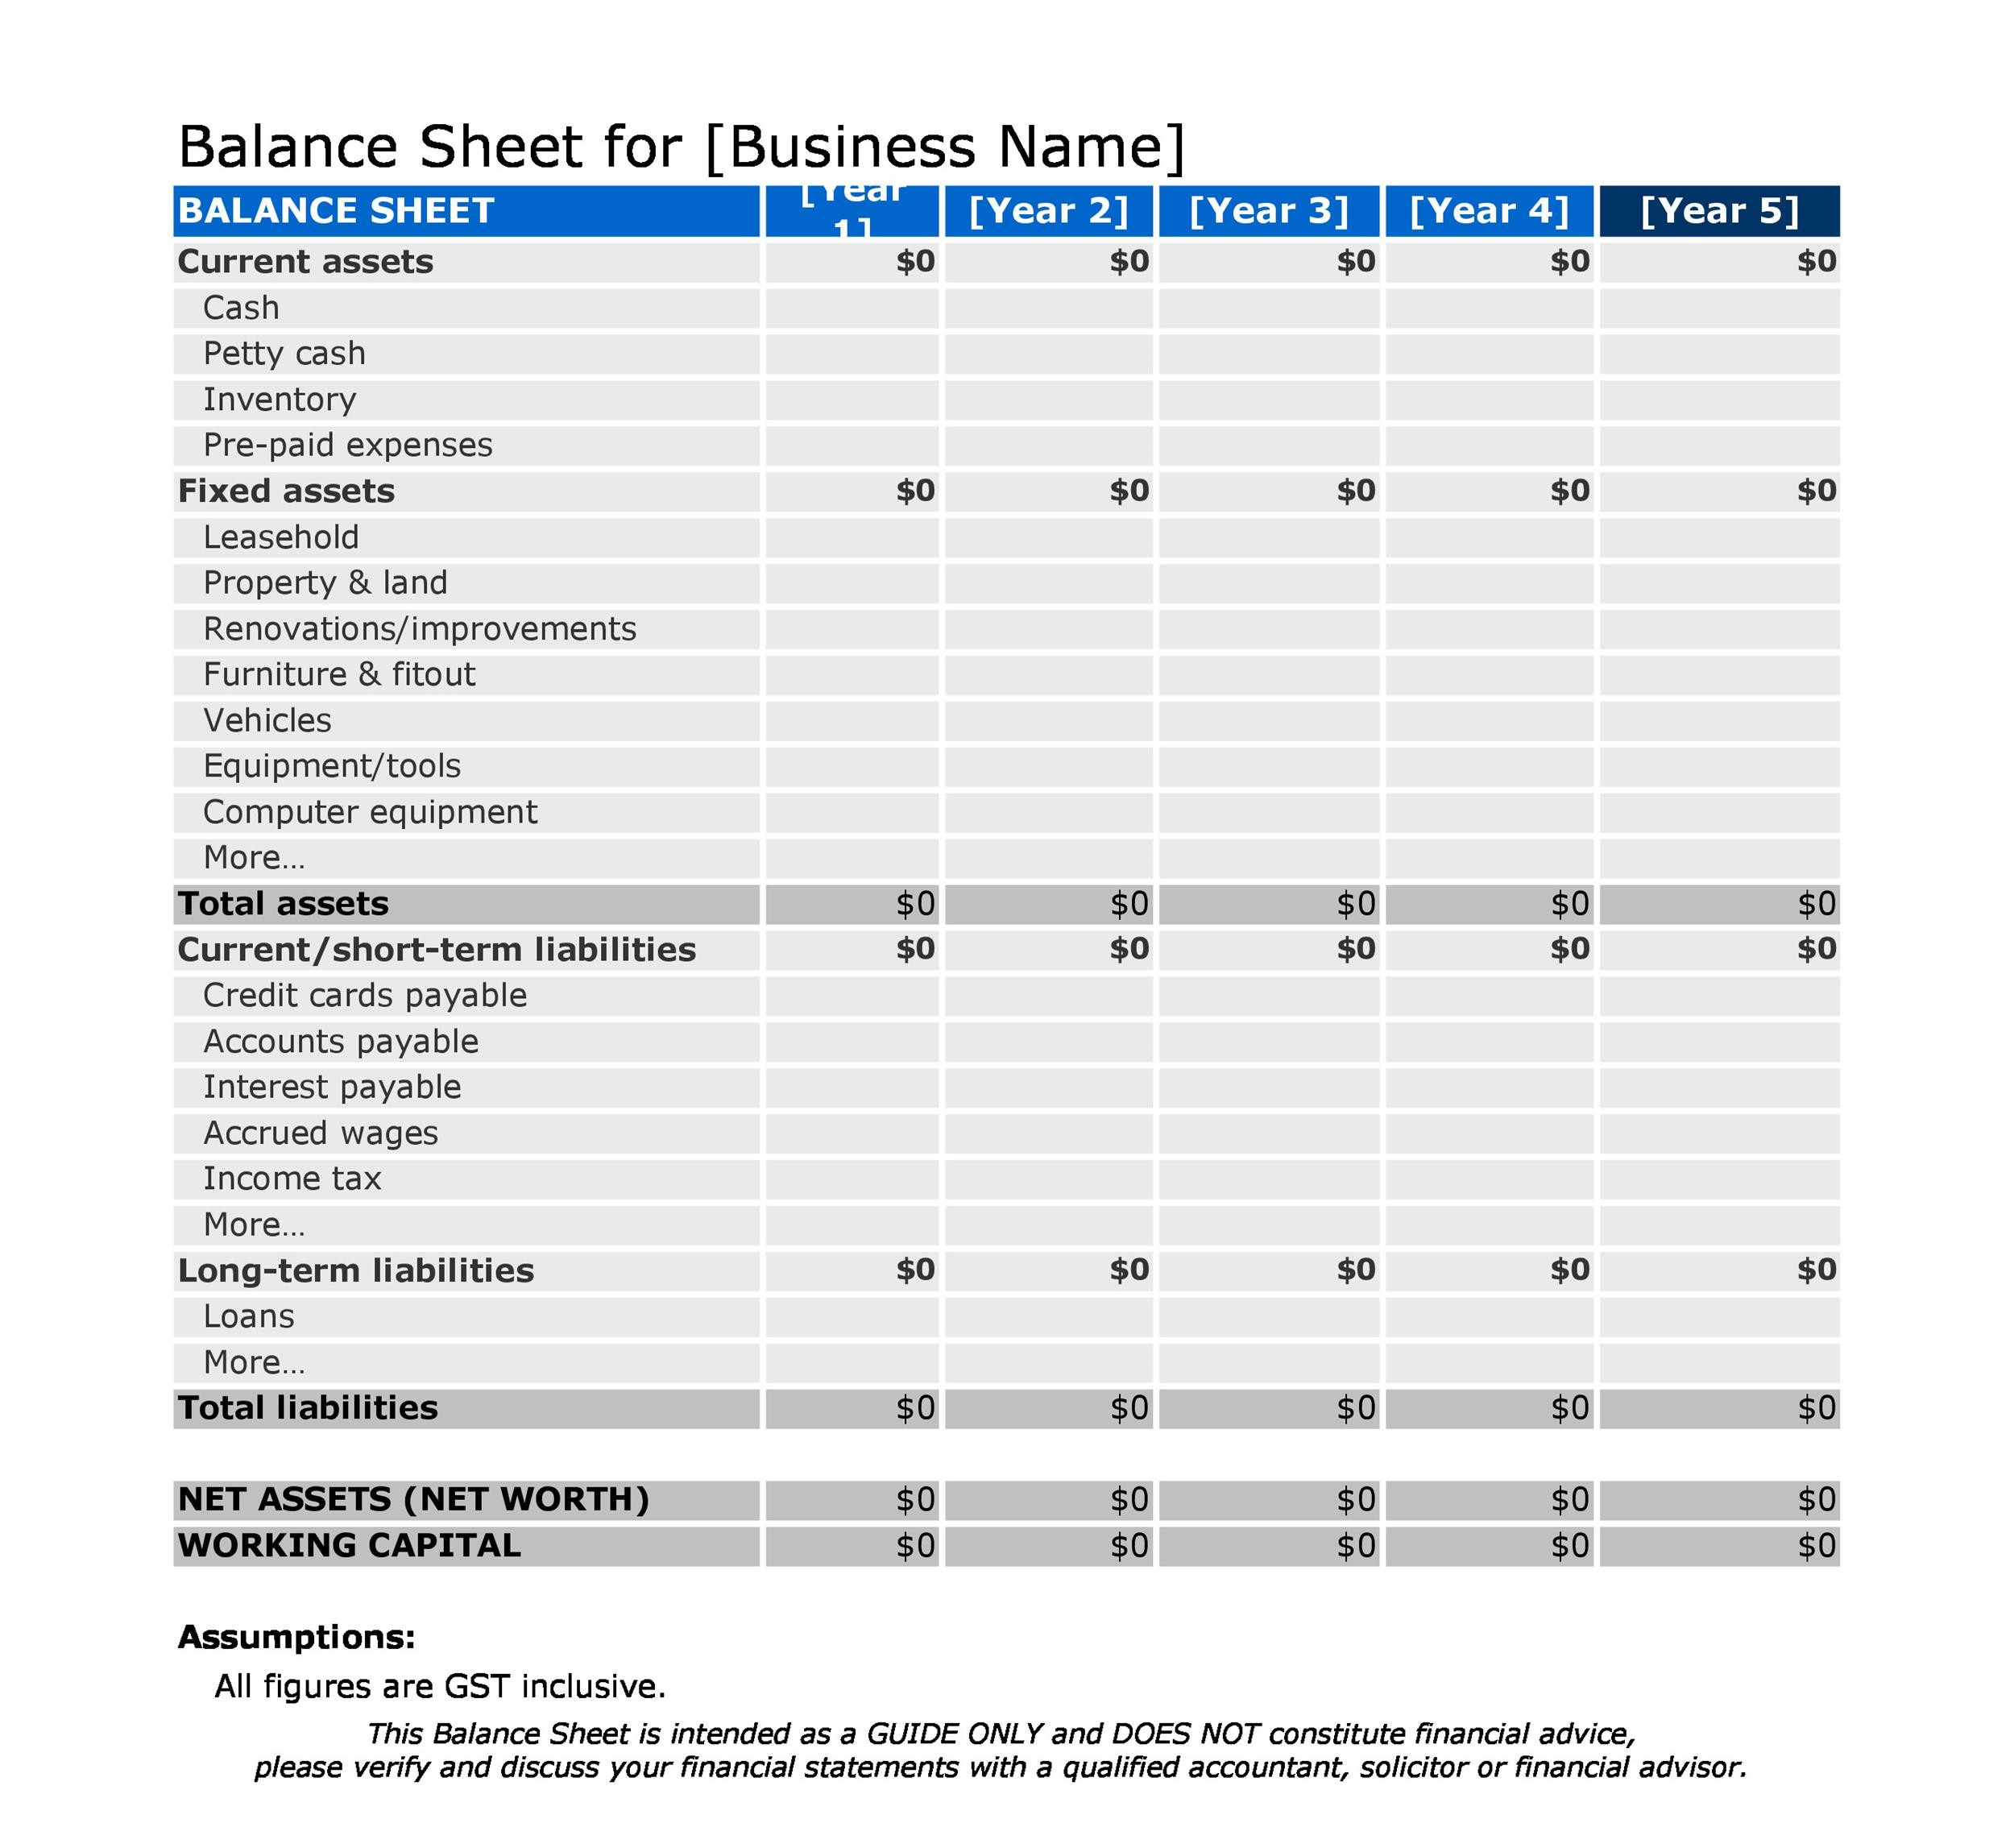 sample balance sheet xls - Ozilalmanoof